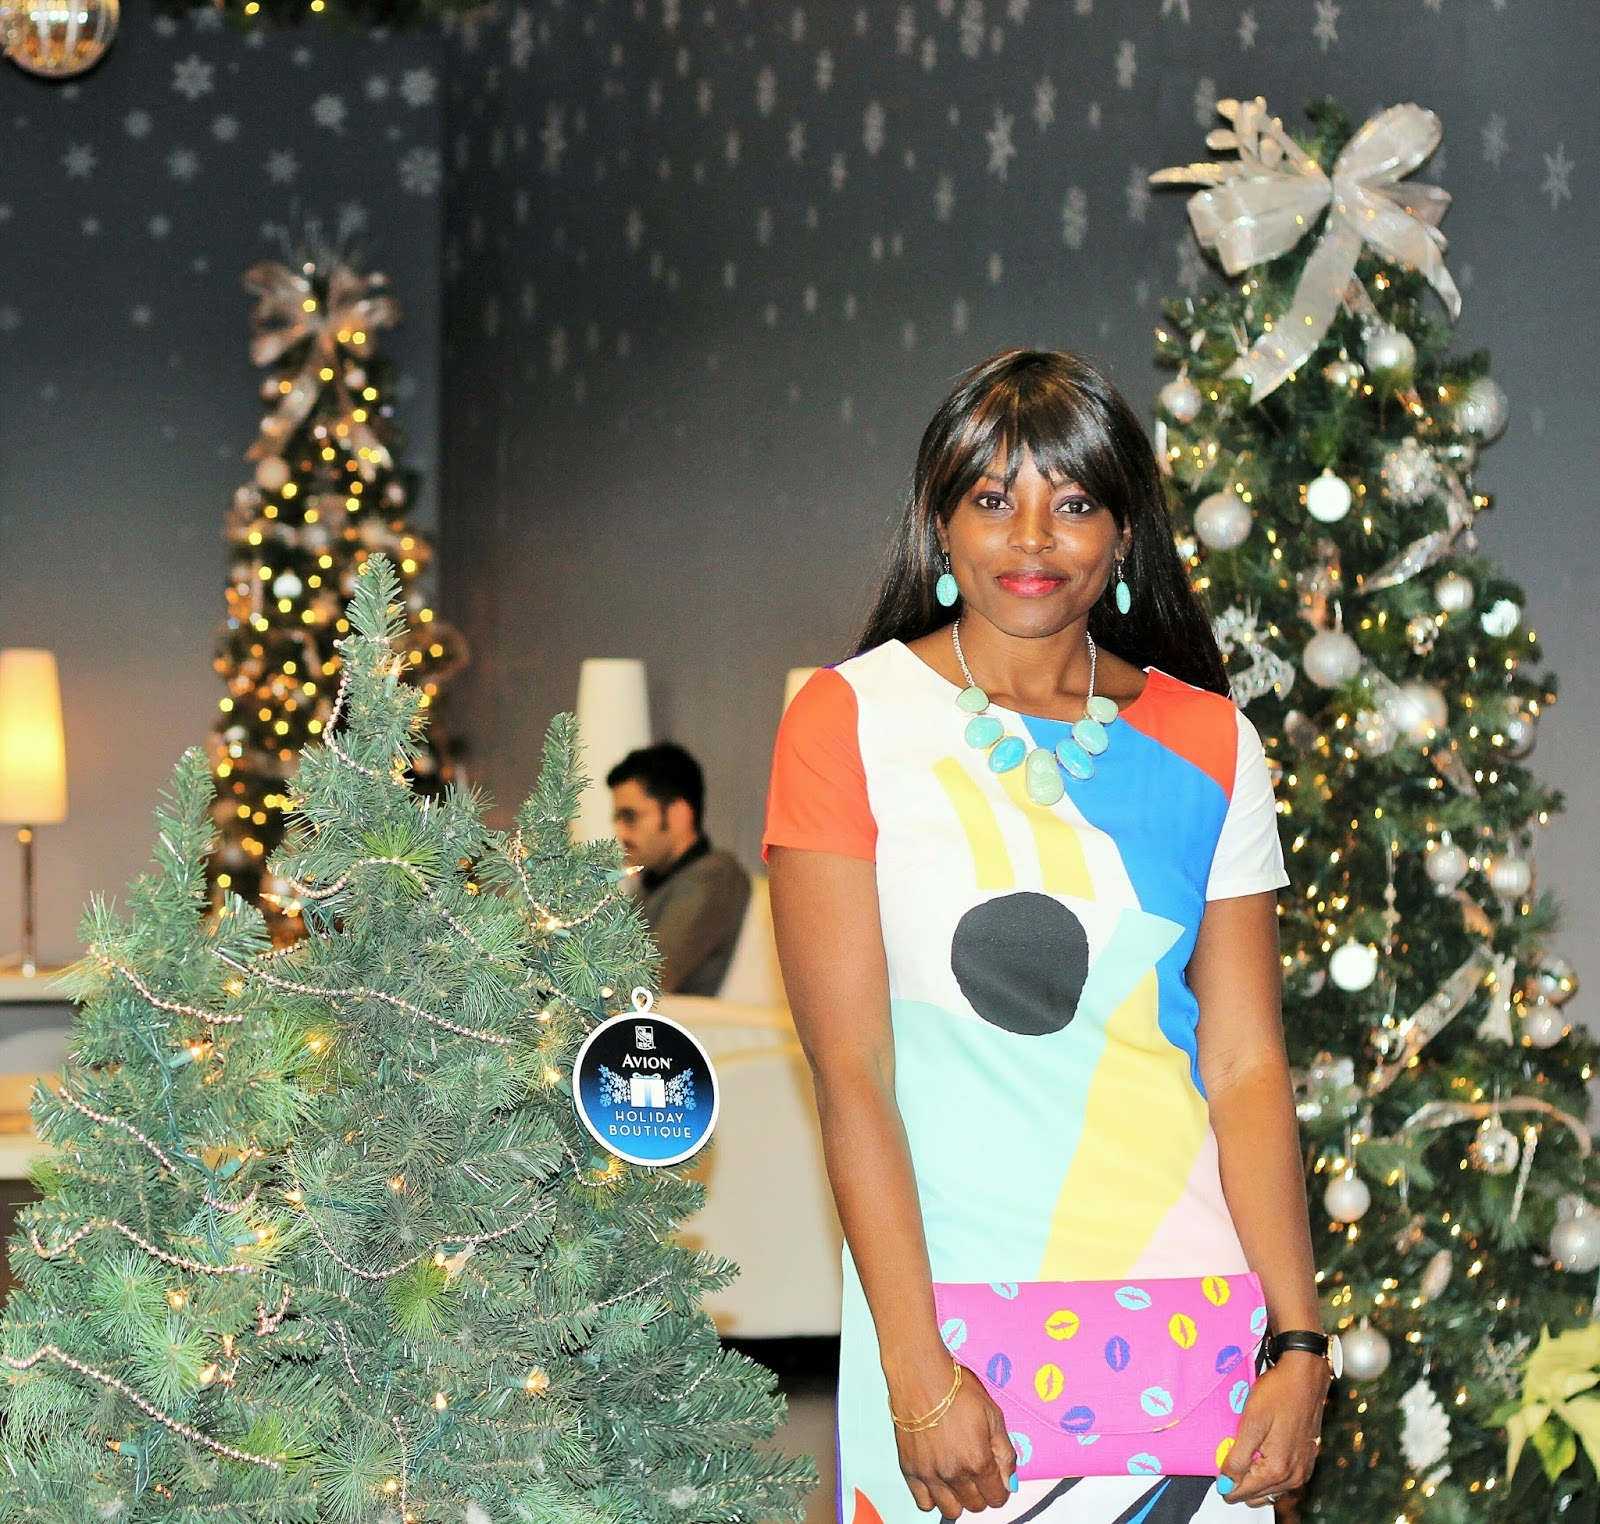 WHAT I WORE TO THE RBC AVION HOLIDAY BOUTIQUE EXPERIENCE LAUNCH #AvonVIP